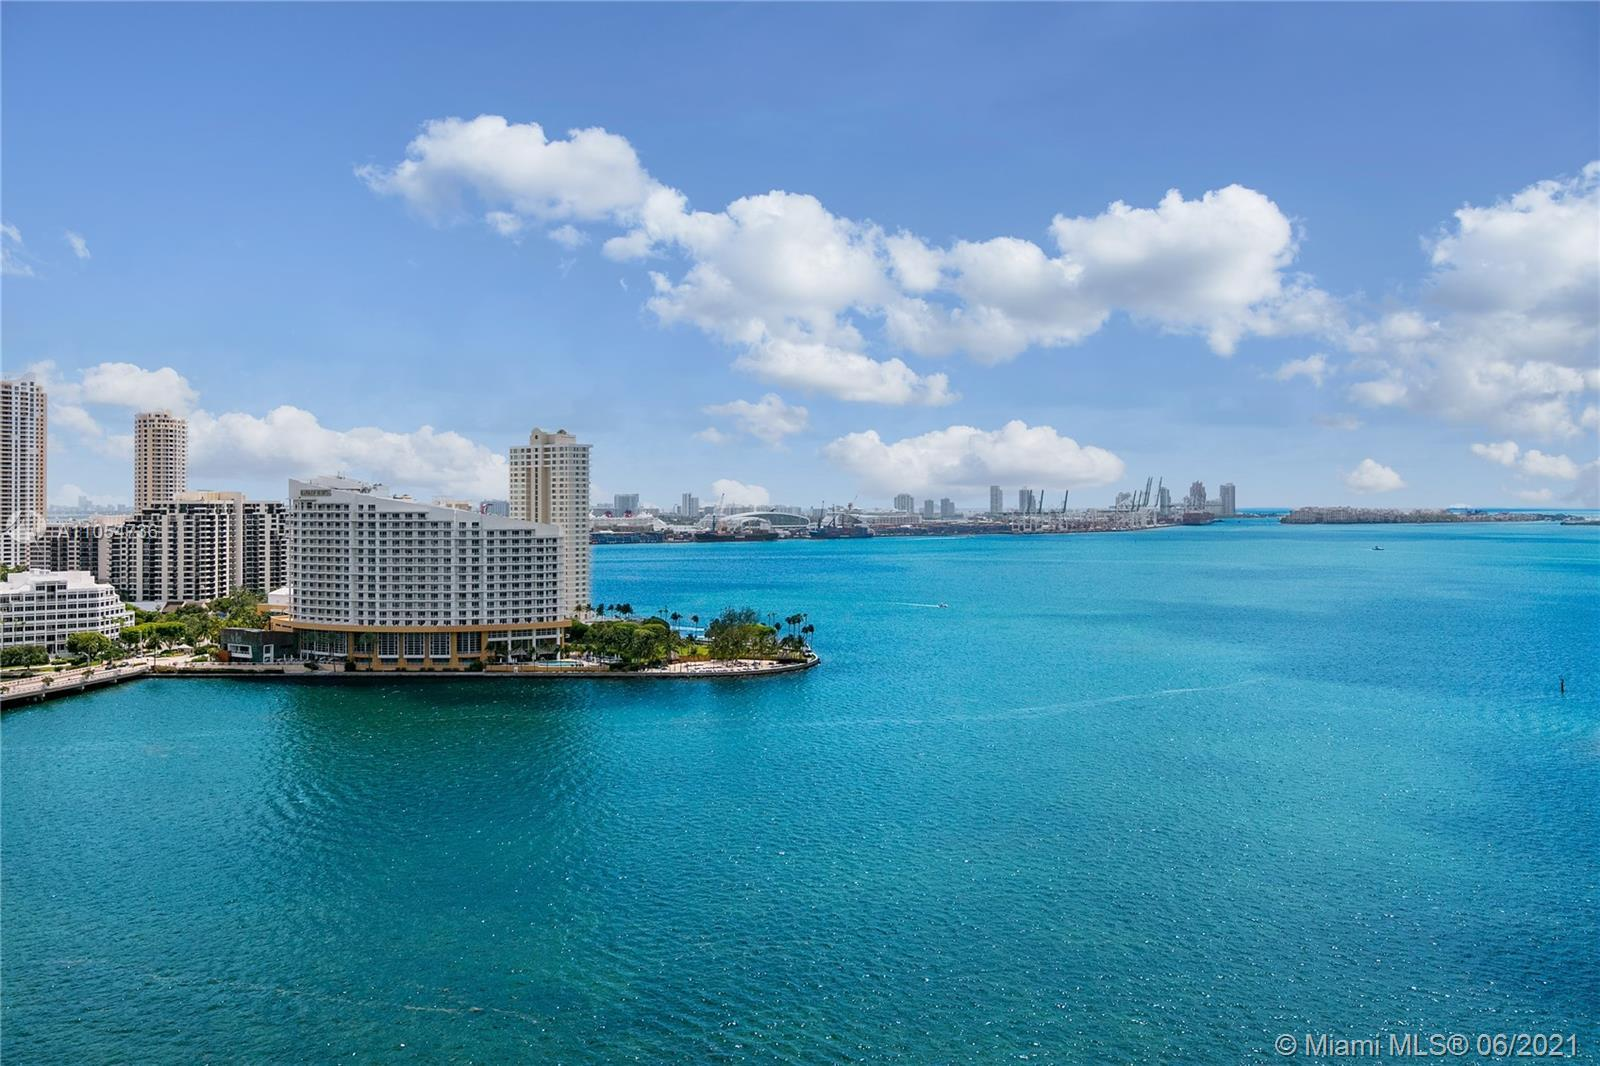 Enjoy Water Views Forever from this 3 Bedroom, 2 Bath Condo located in the Heart of Miami's Financia